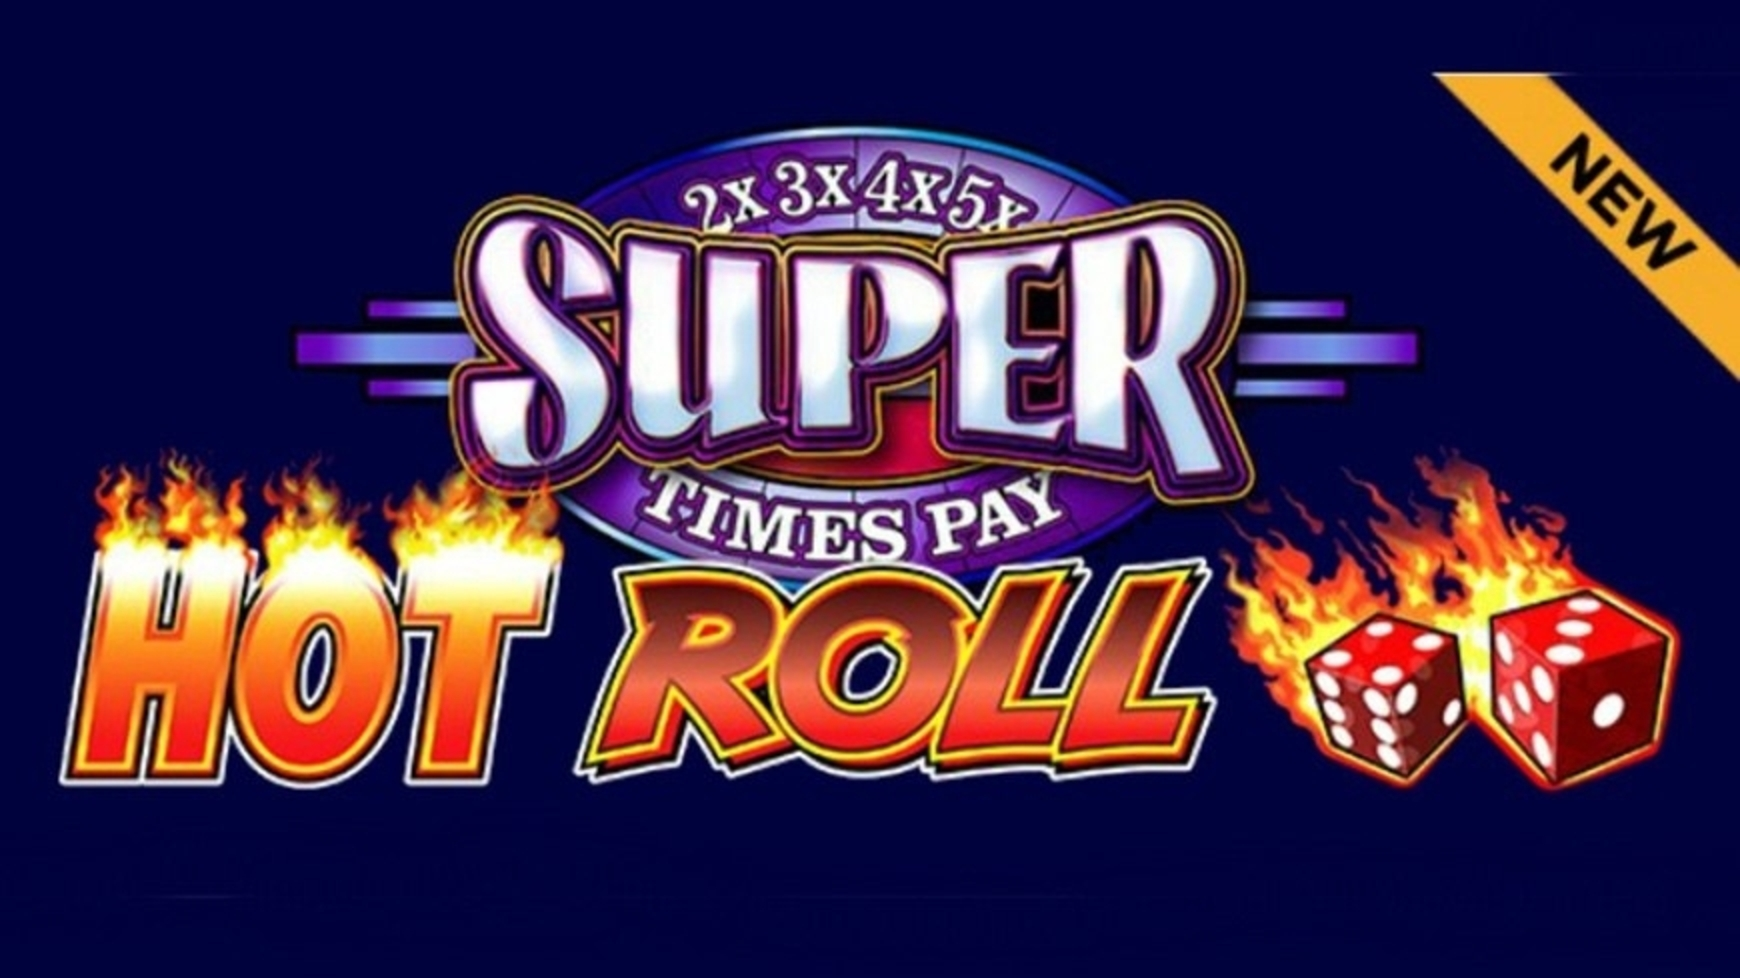 Se Super Times Pay Online Slot Demo Game, IGT